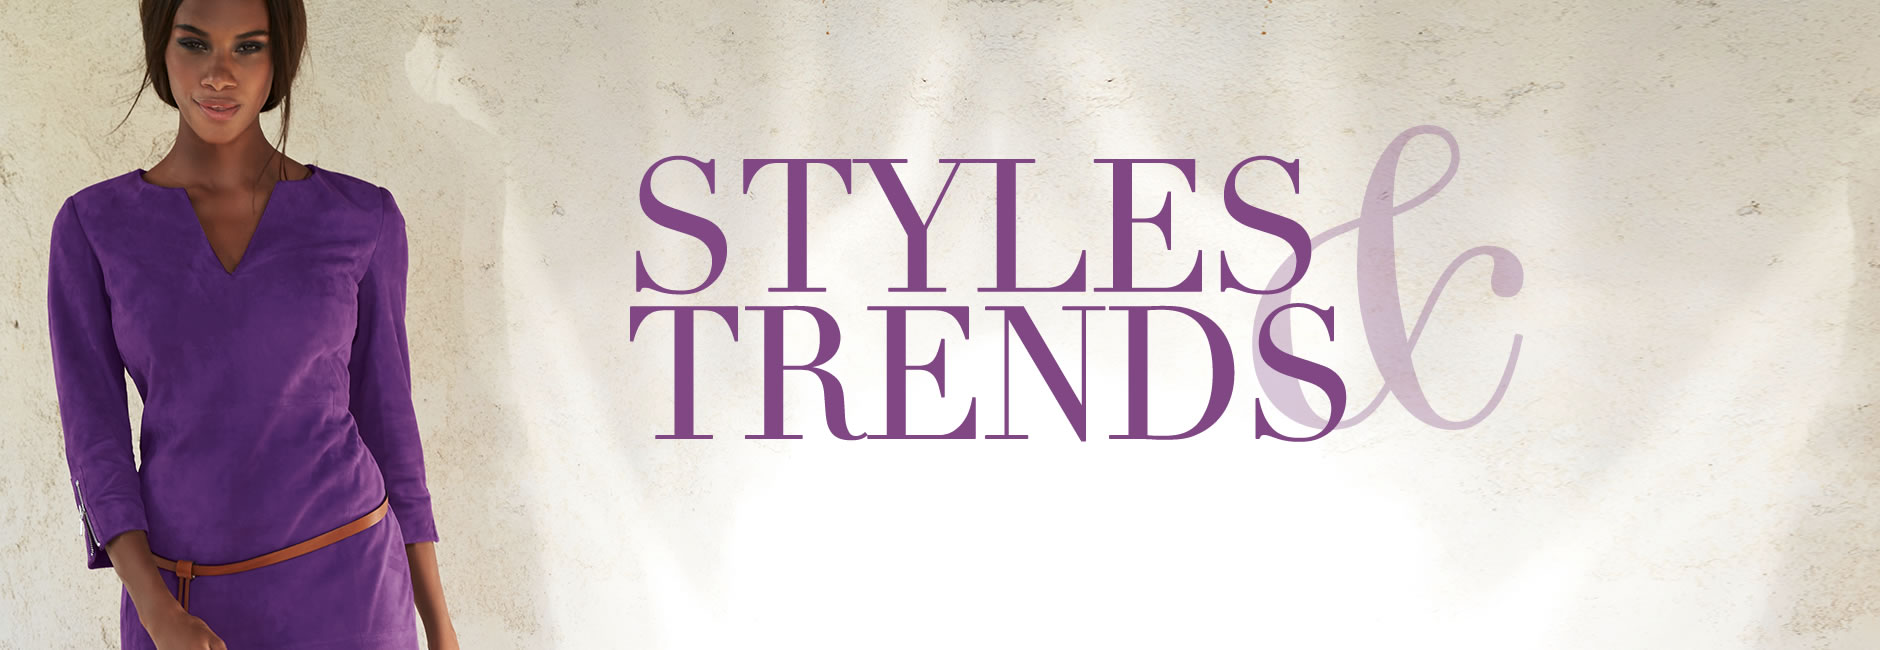 Styles & trends